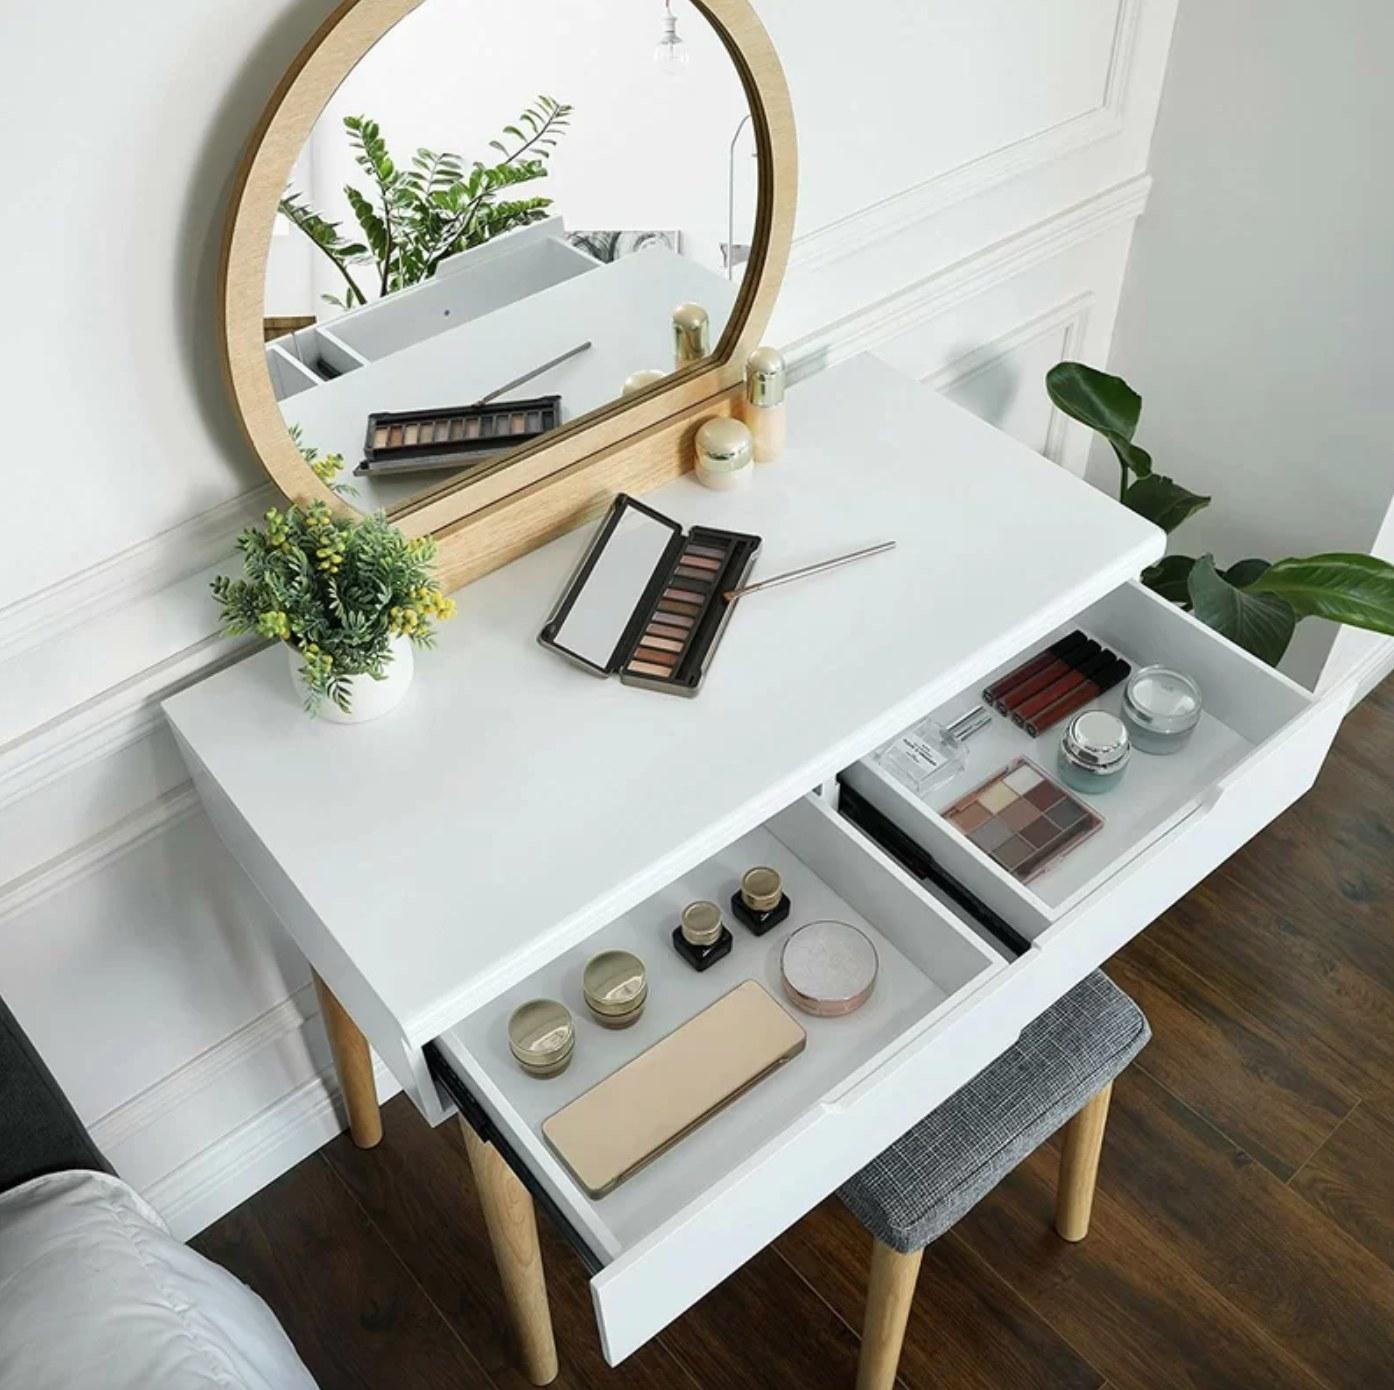 The vanity set with a stool in natural/white holding makeup